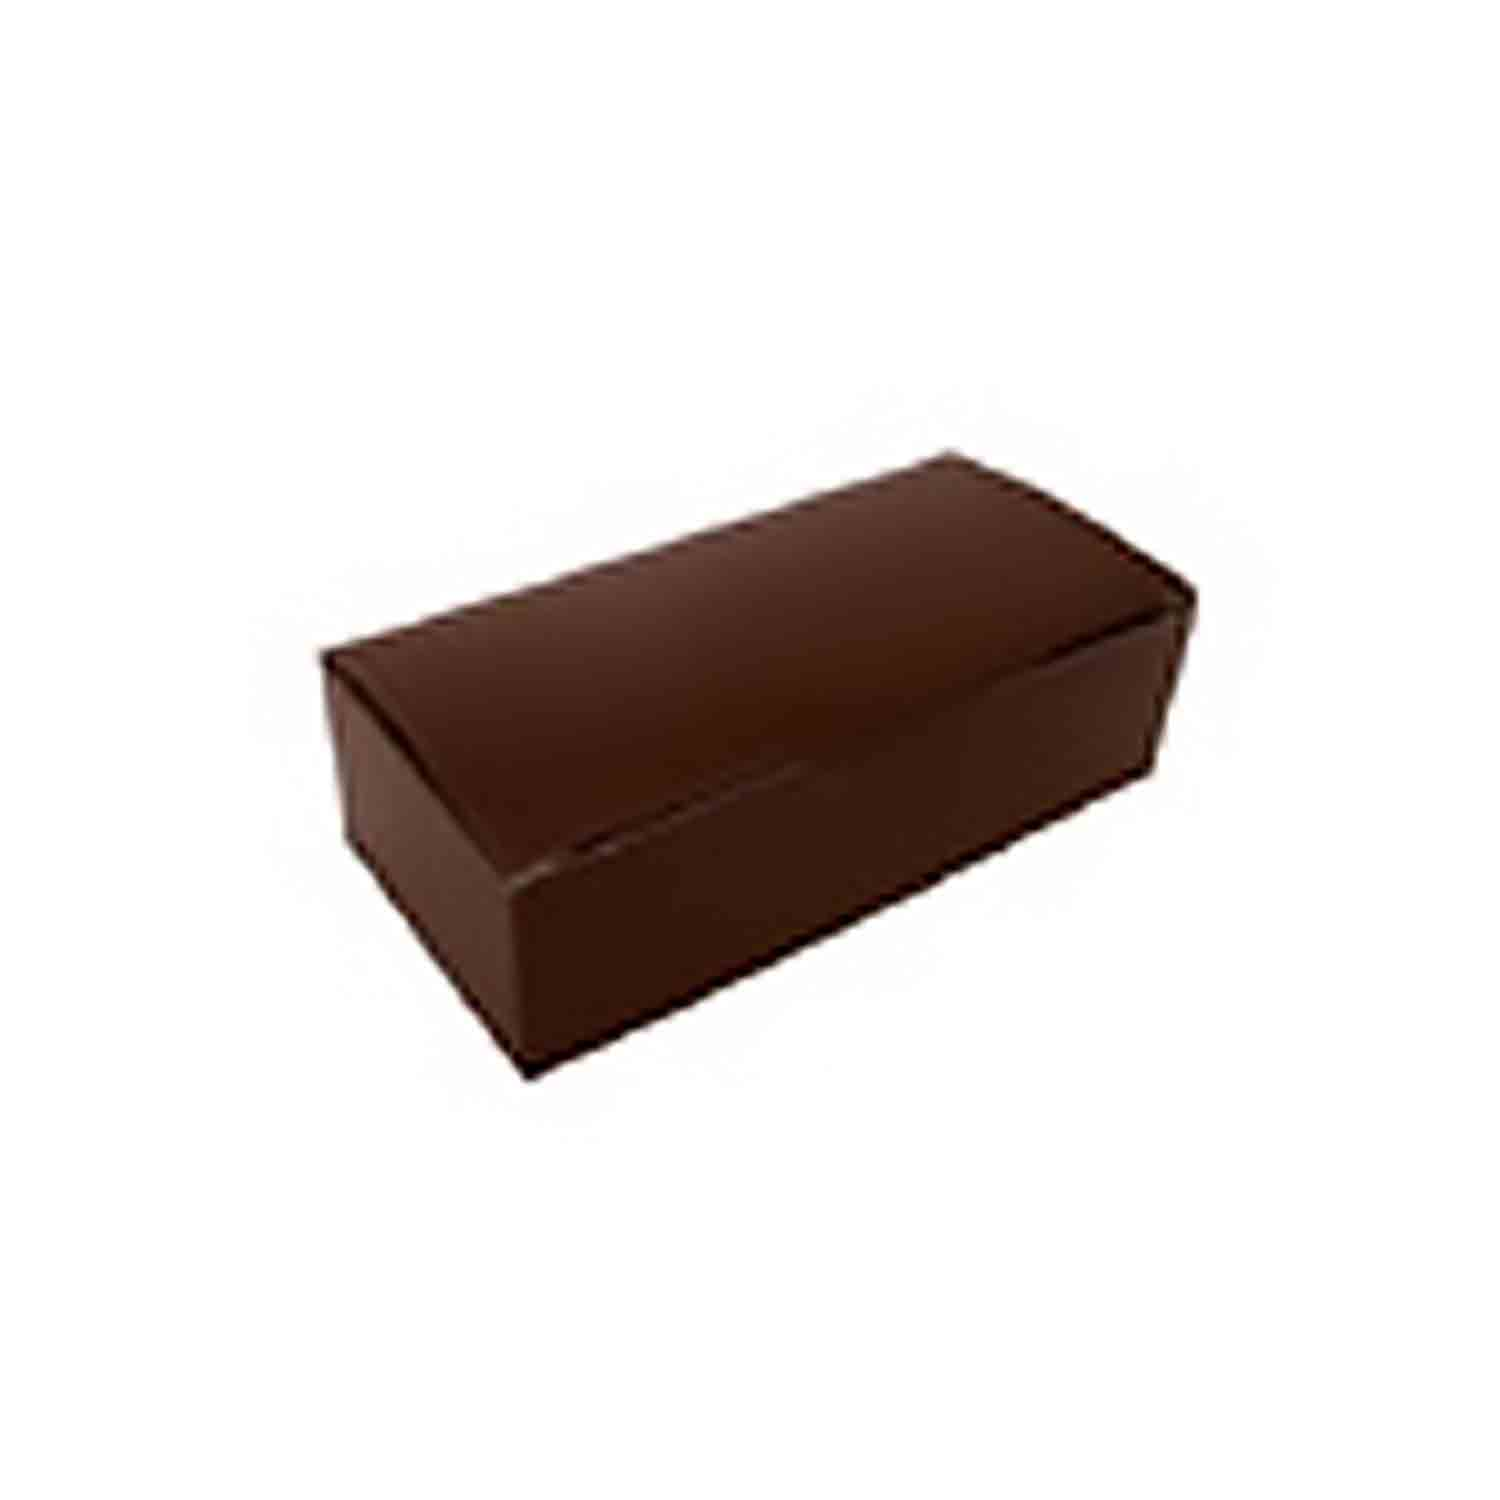 1 lb. Brown Candy Box